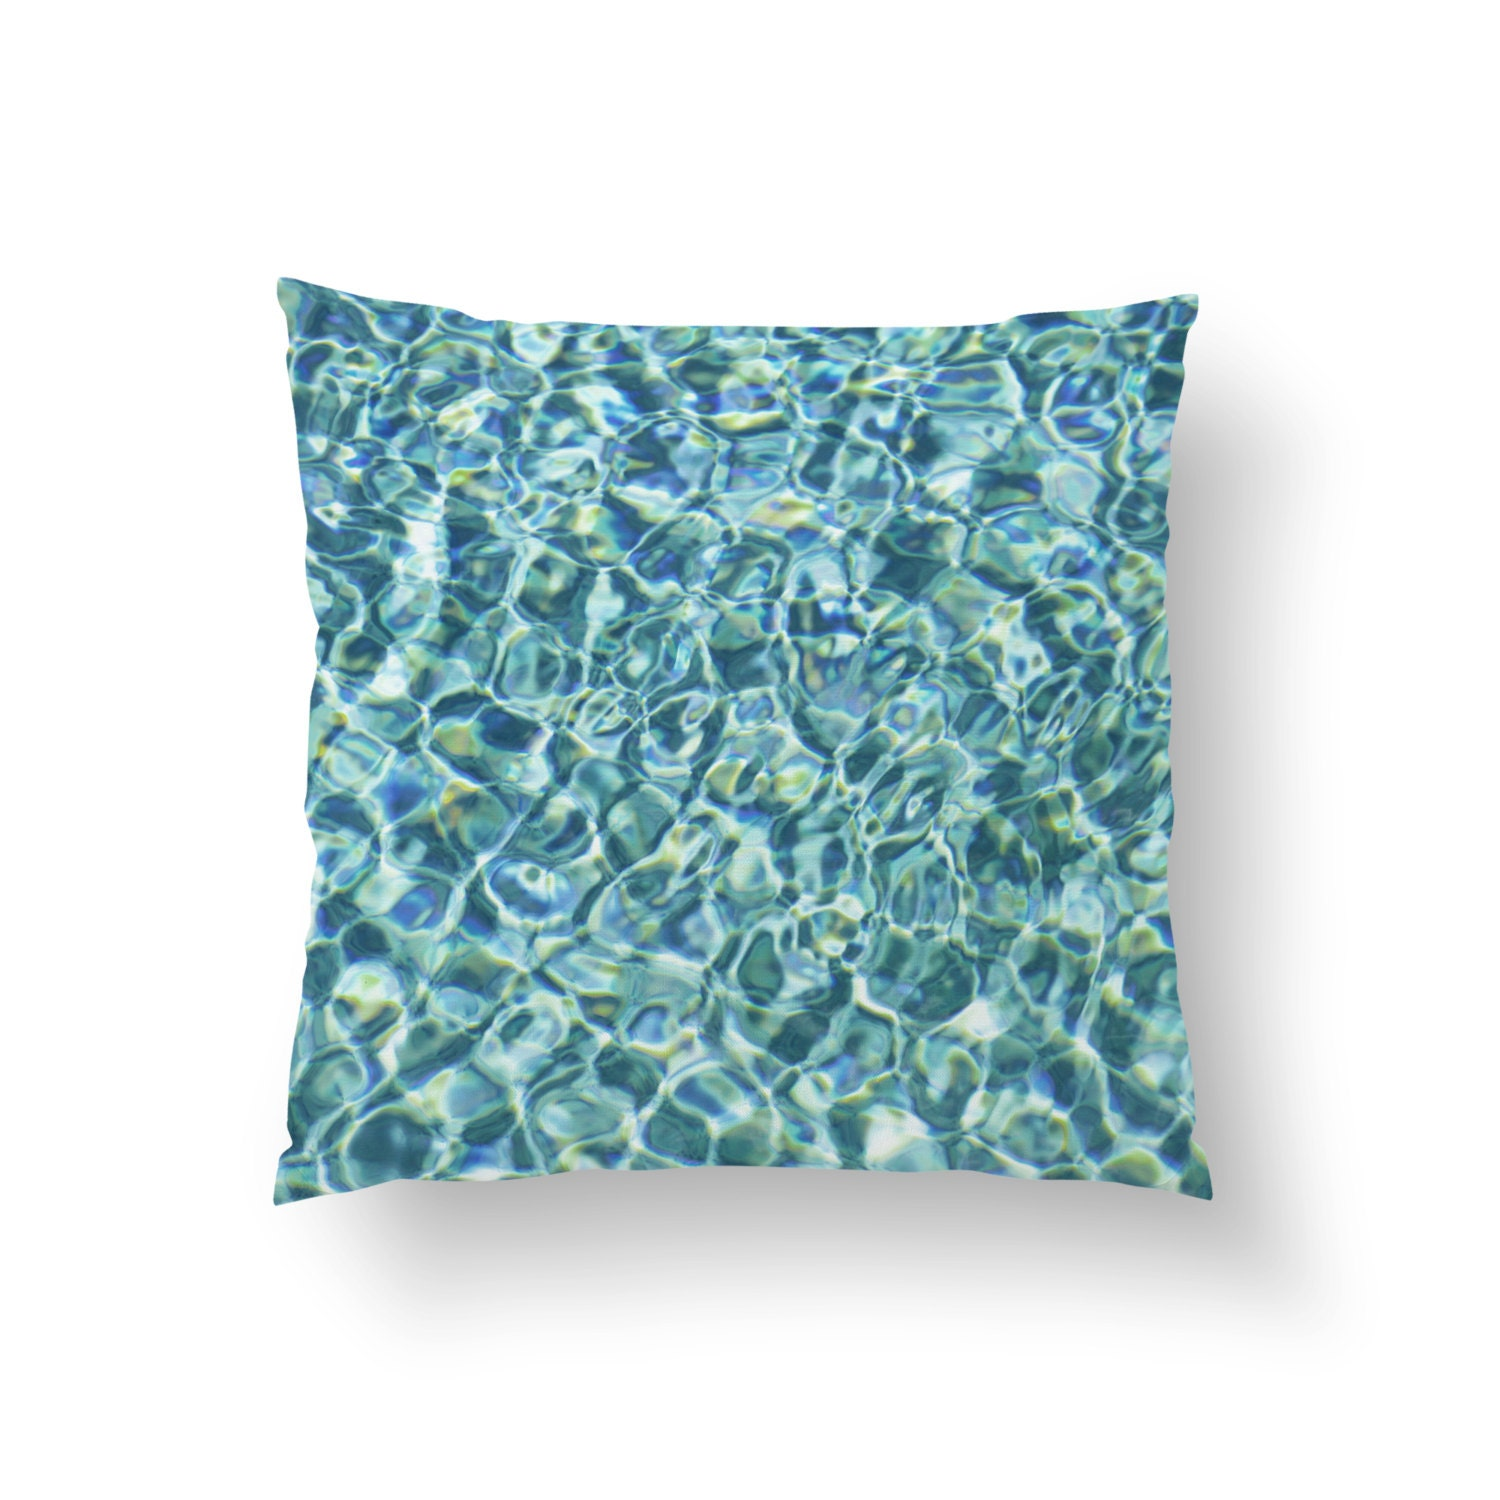 Pool Blue Throw Pillows : Pool Water Throw Pillow Cover Nautical Blue Beach by NatureCityCo